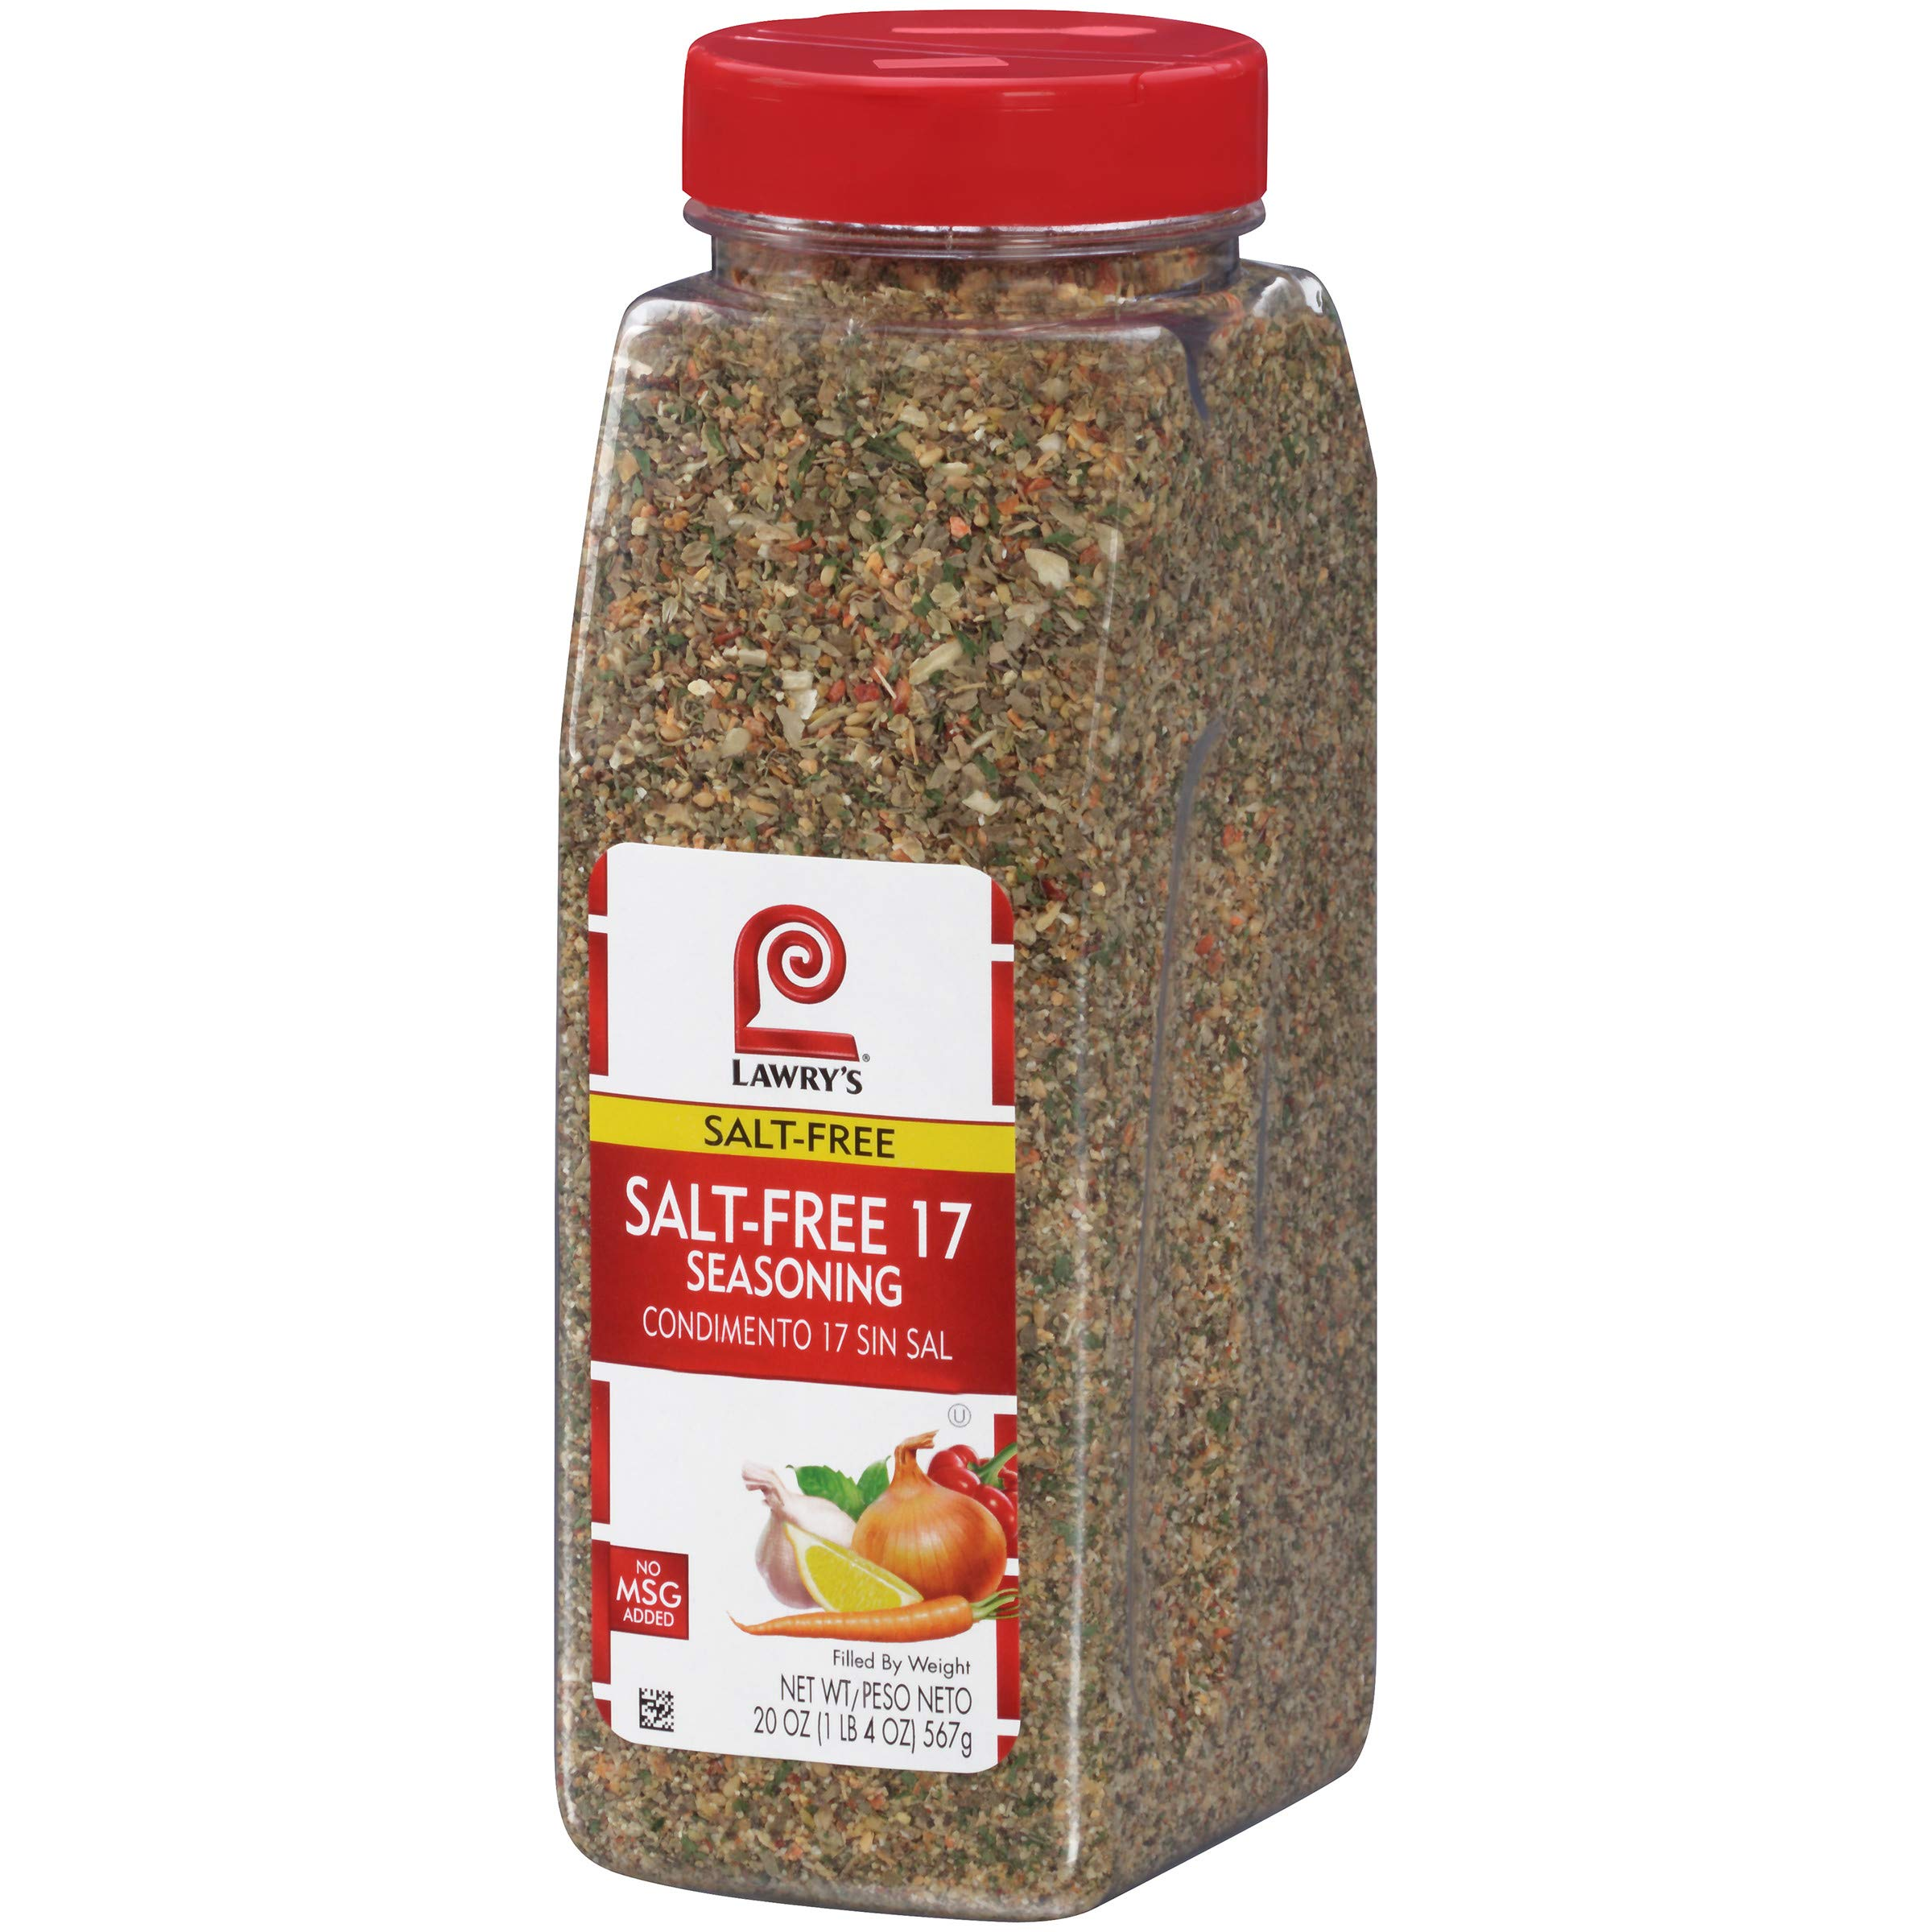 Lawry's Salt Free 17 Seasoning, 20 oz